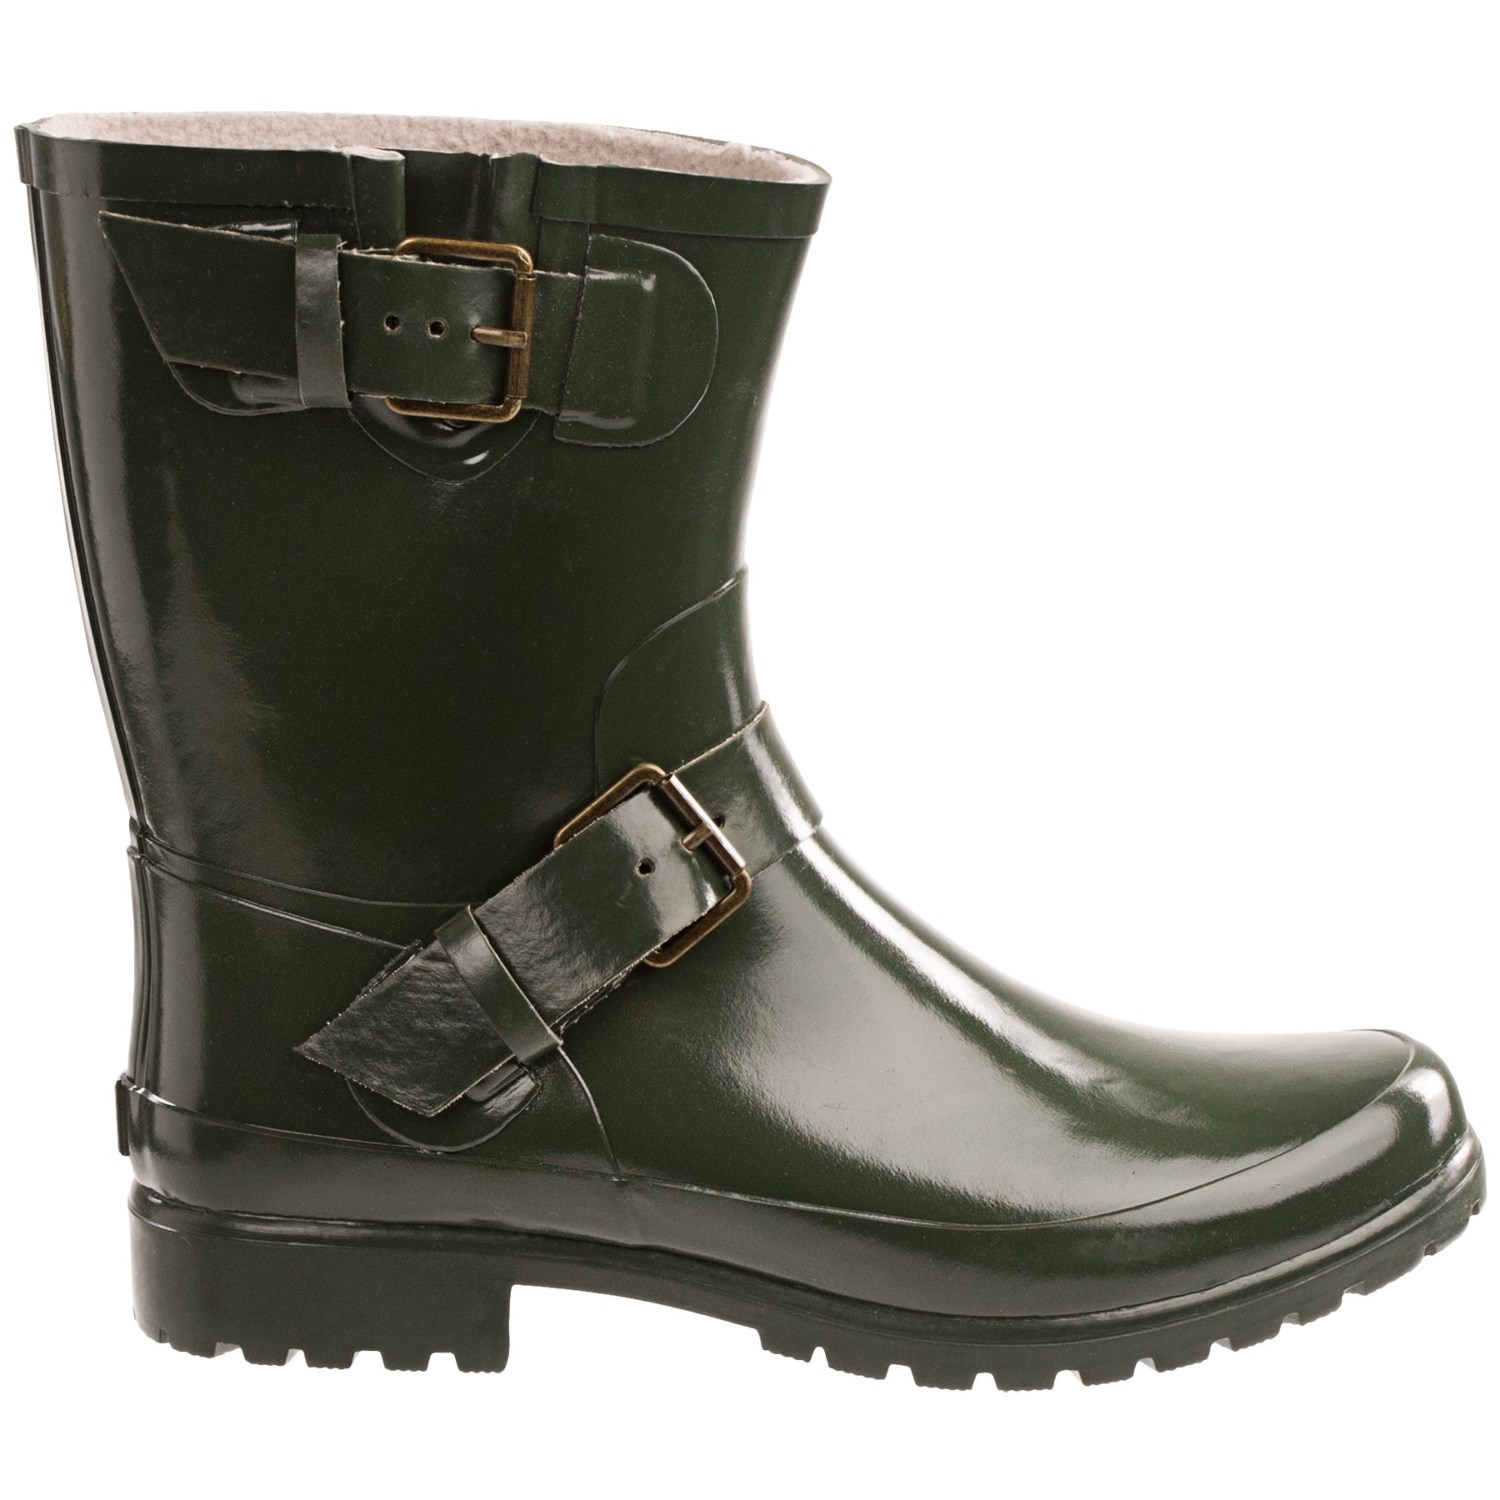 Sperry Rain Boots Clearance - Boot Hto